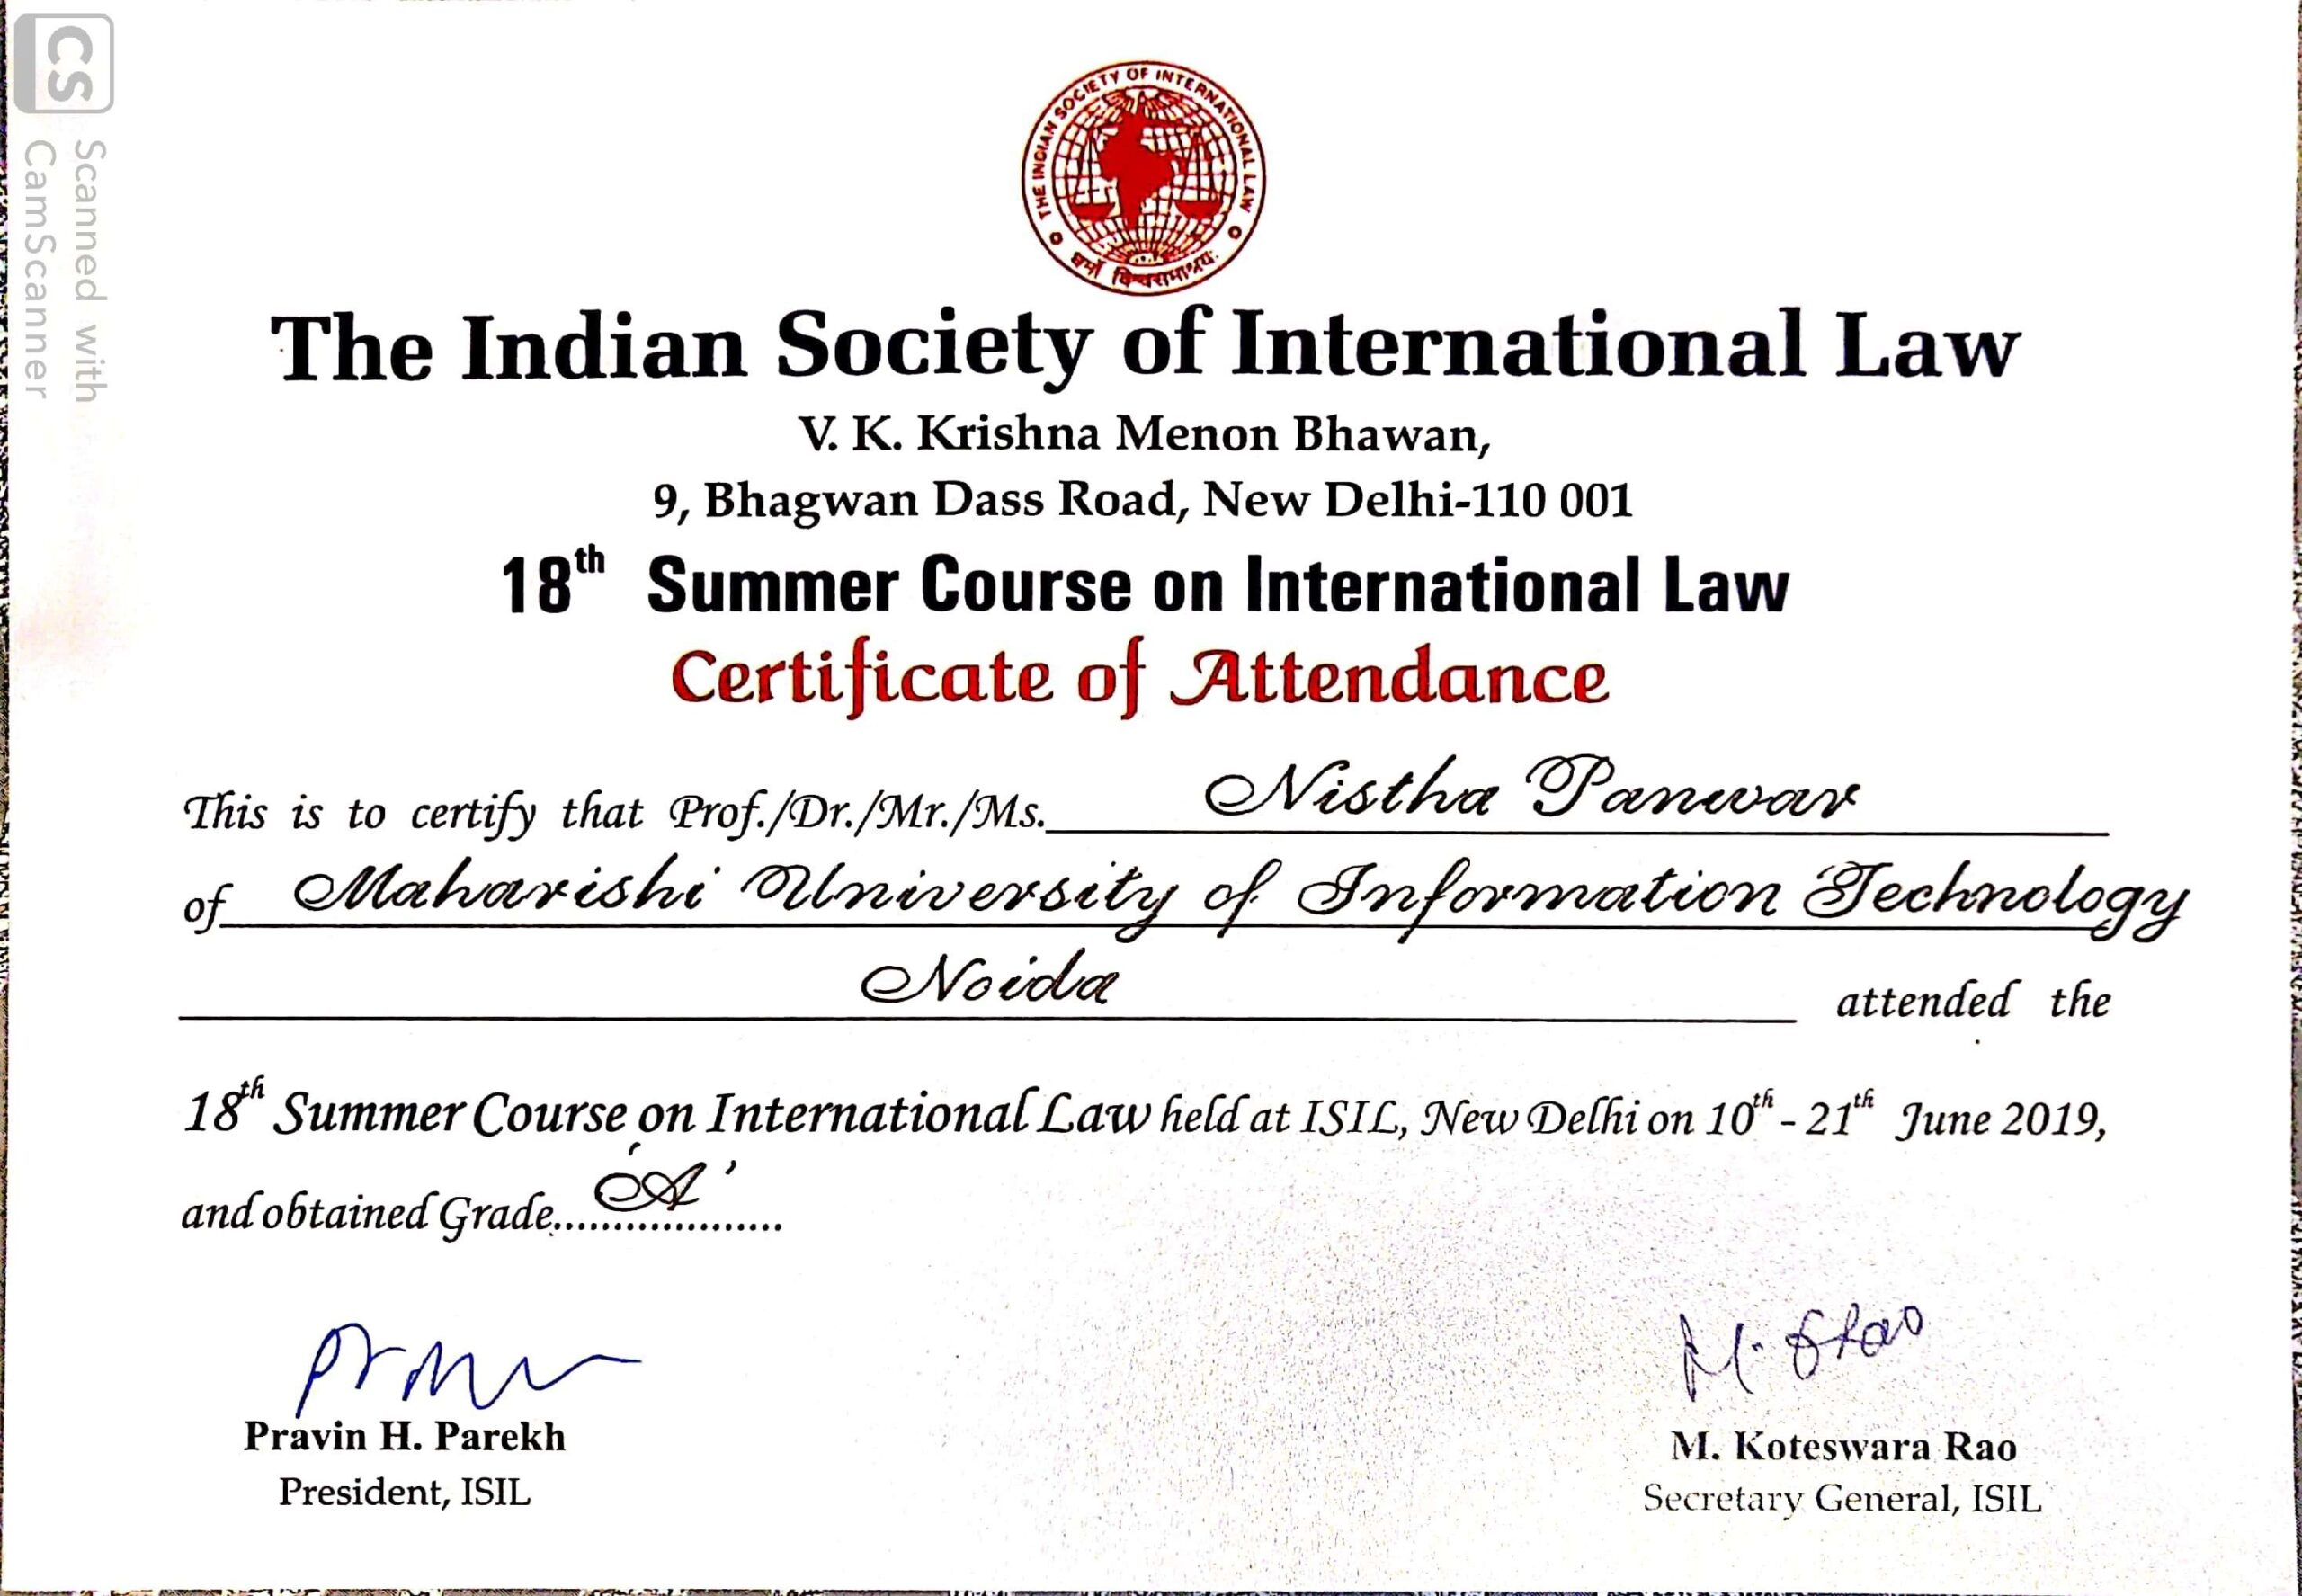 MUIT Noida: Law Student Certificate - The Indian Society Of International Law Certificate